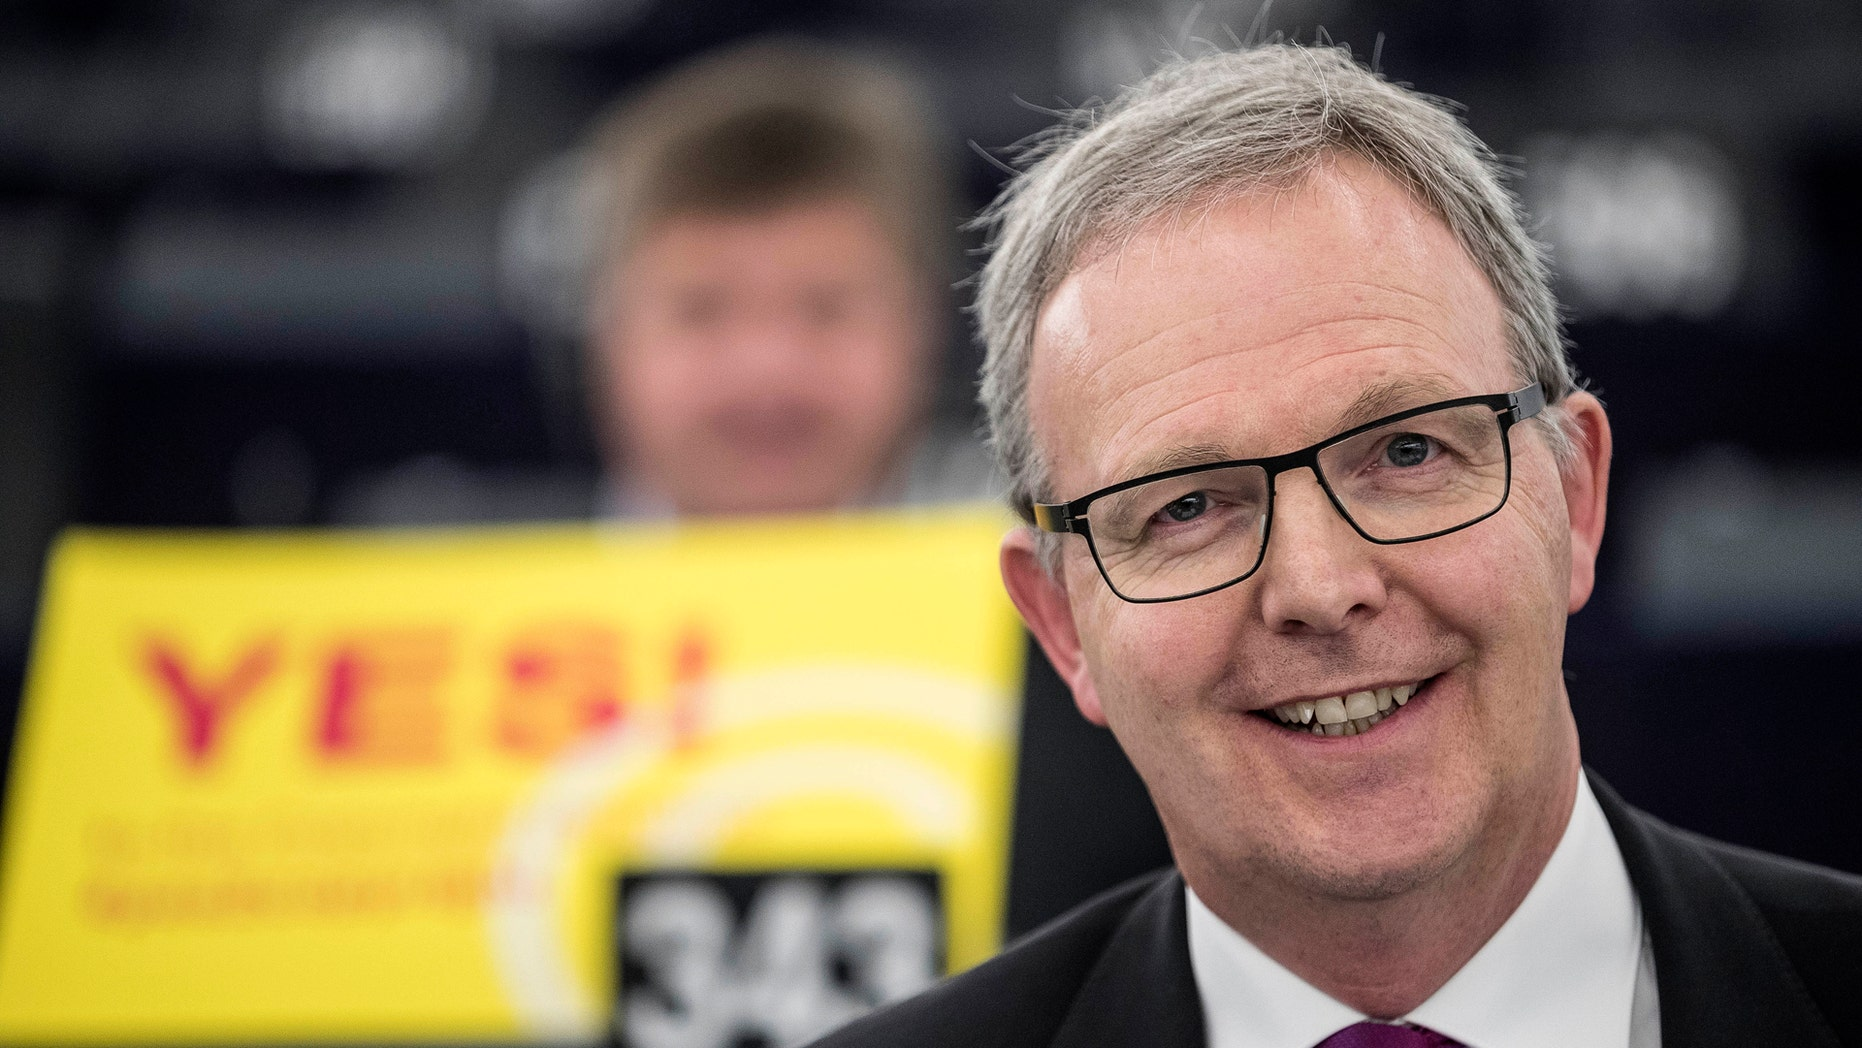 Axel Voss, Member of a European Parliament and rapporteur of a copyright bill, poses for a media during a European Parliament in Strasbourg, France, Tuesday Mar 26, 2019. The European Parliament is furiously debating a pros and cons of a landmark copyright check one final time before a legislature will opinion on it later. (AP Photo/Jean-Francois Badias)